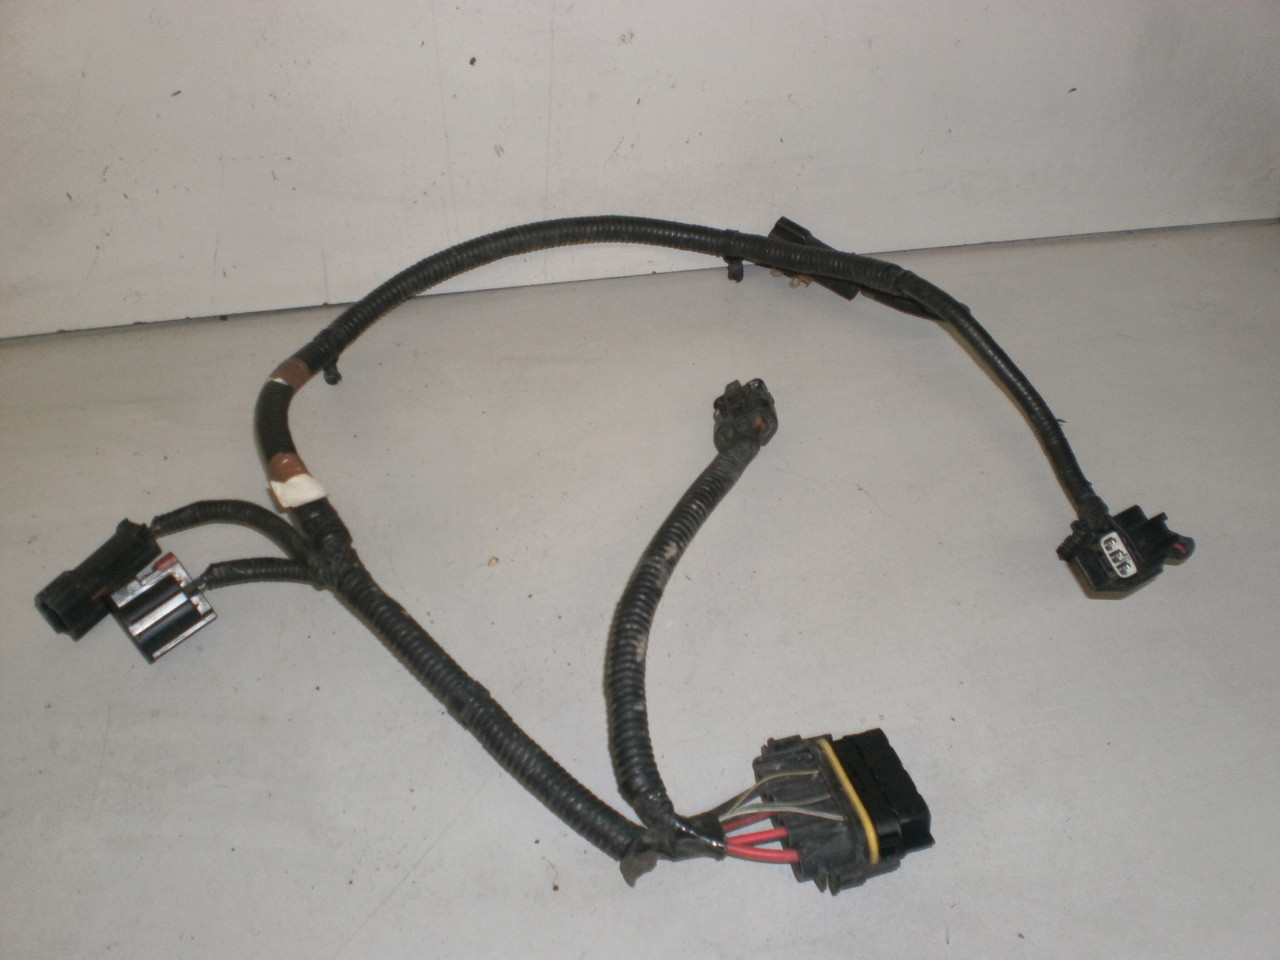 Fan Wire Harness 2002 Schema Wiring Diagram Online Electrical Connector Types 2000 Jaguar S Type 4 0 V8 Radiator Engine Cooling Cartoon